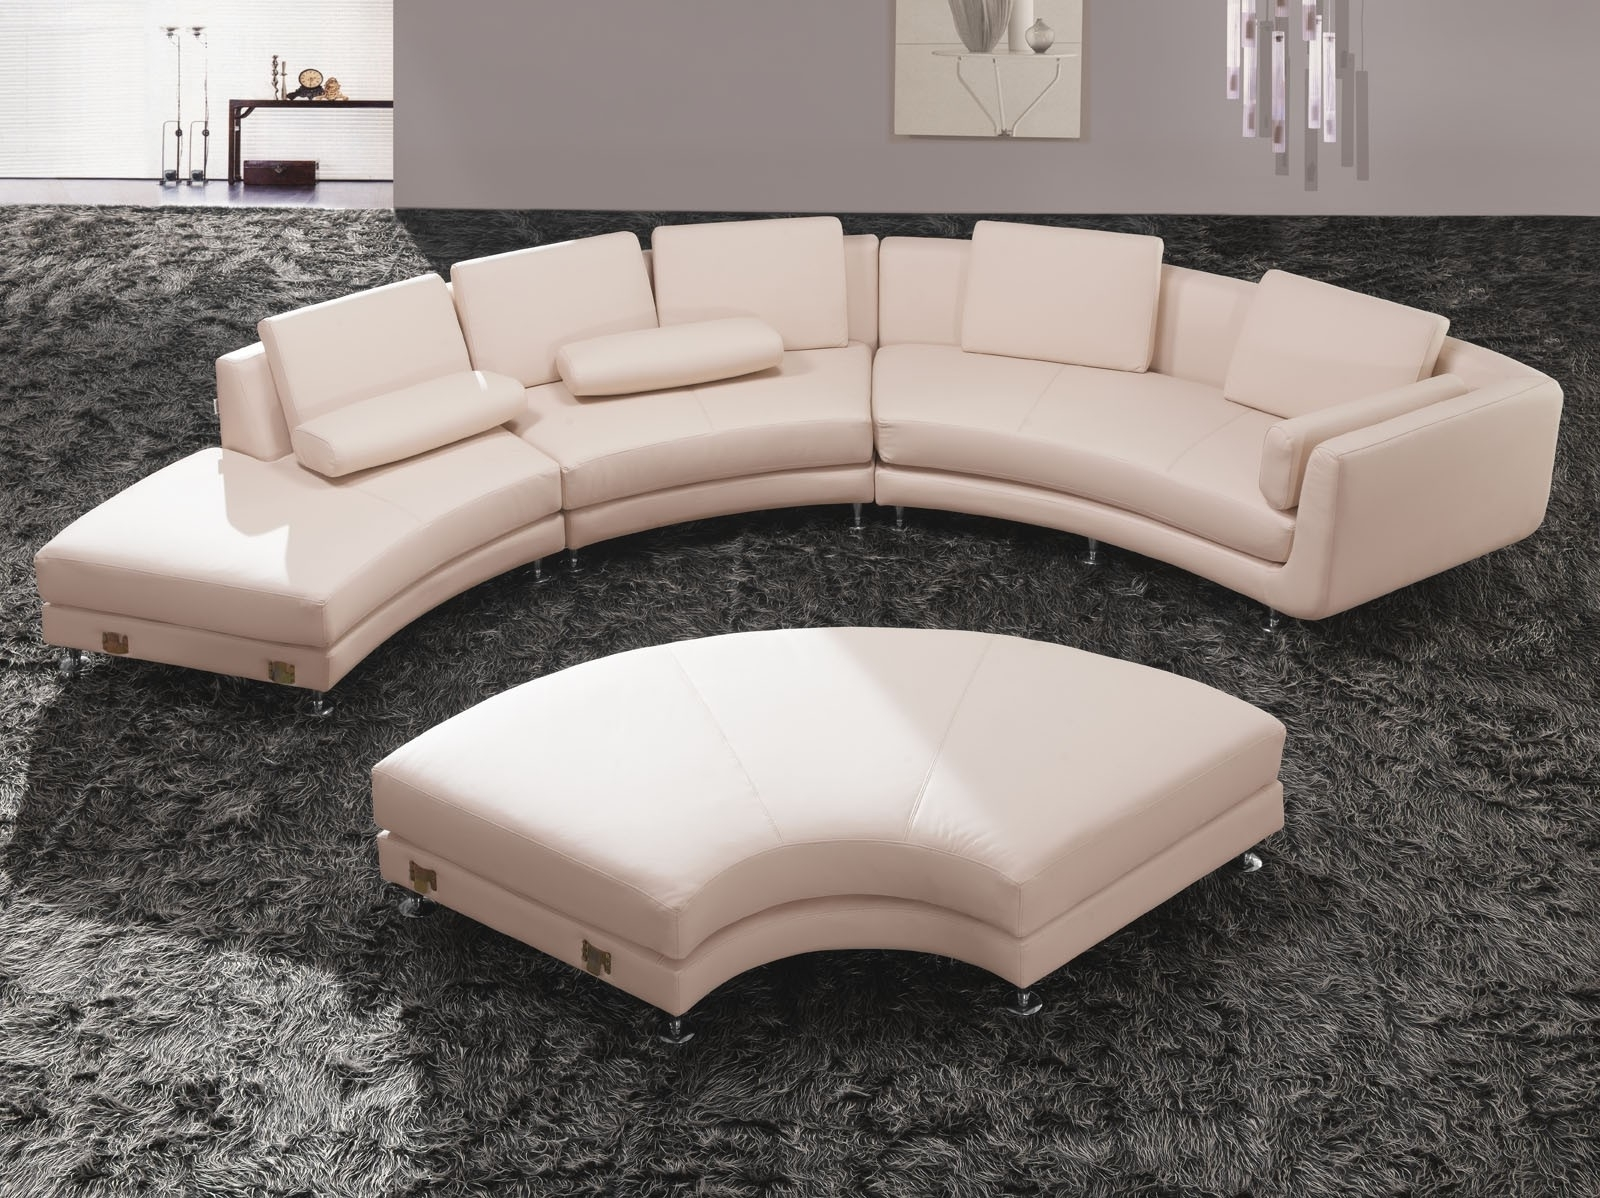 Sofa : Glamorous Round Sectional Sofa Bed Curved Leather Tufted Throughout Current Round Sofas (View 14 of 20)